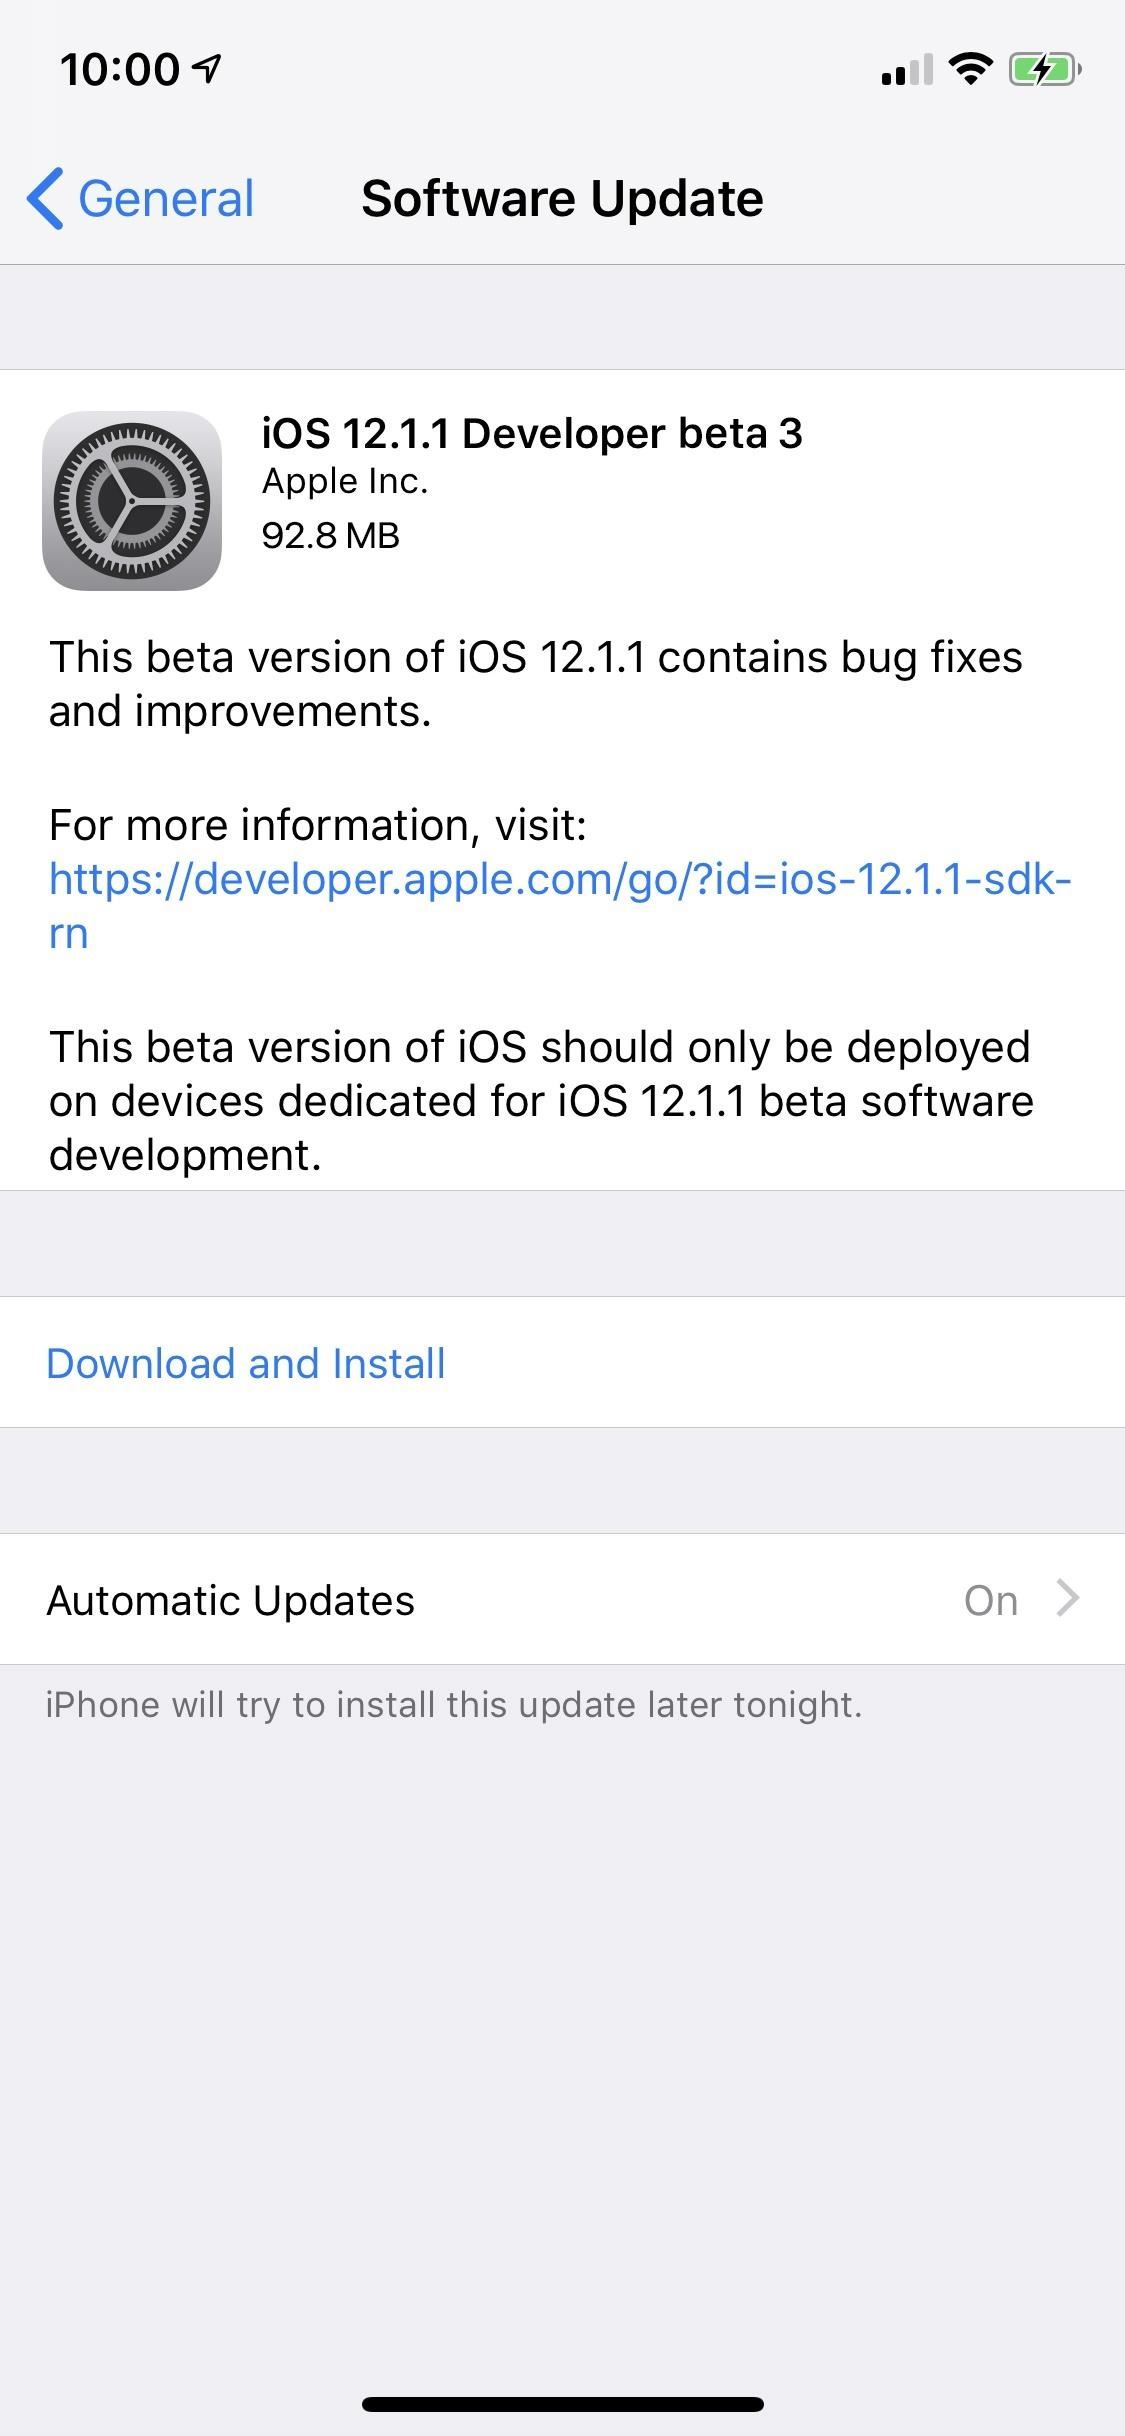 Apple Just Released iOS 12.1.1 Developer Beta 3 to Testers